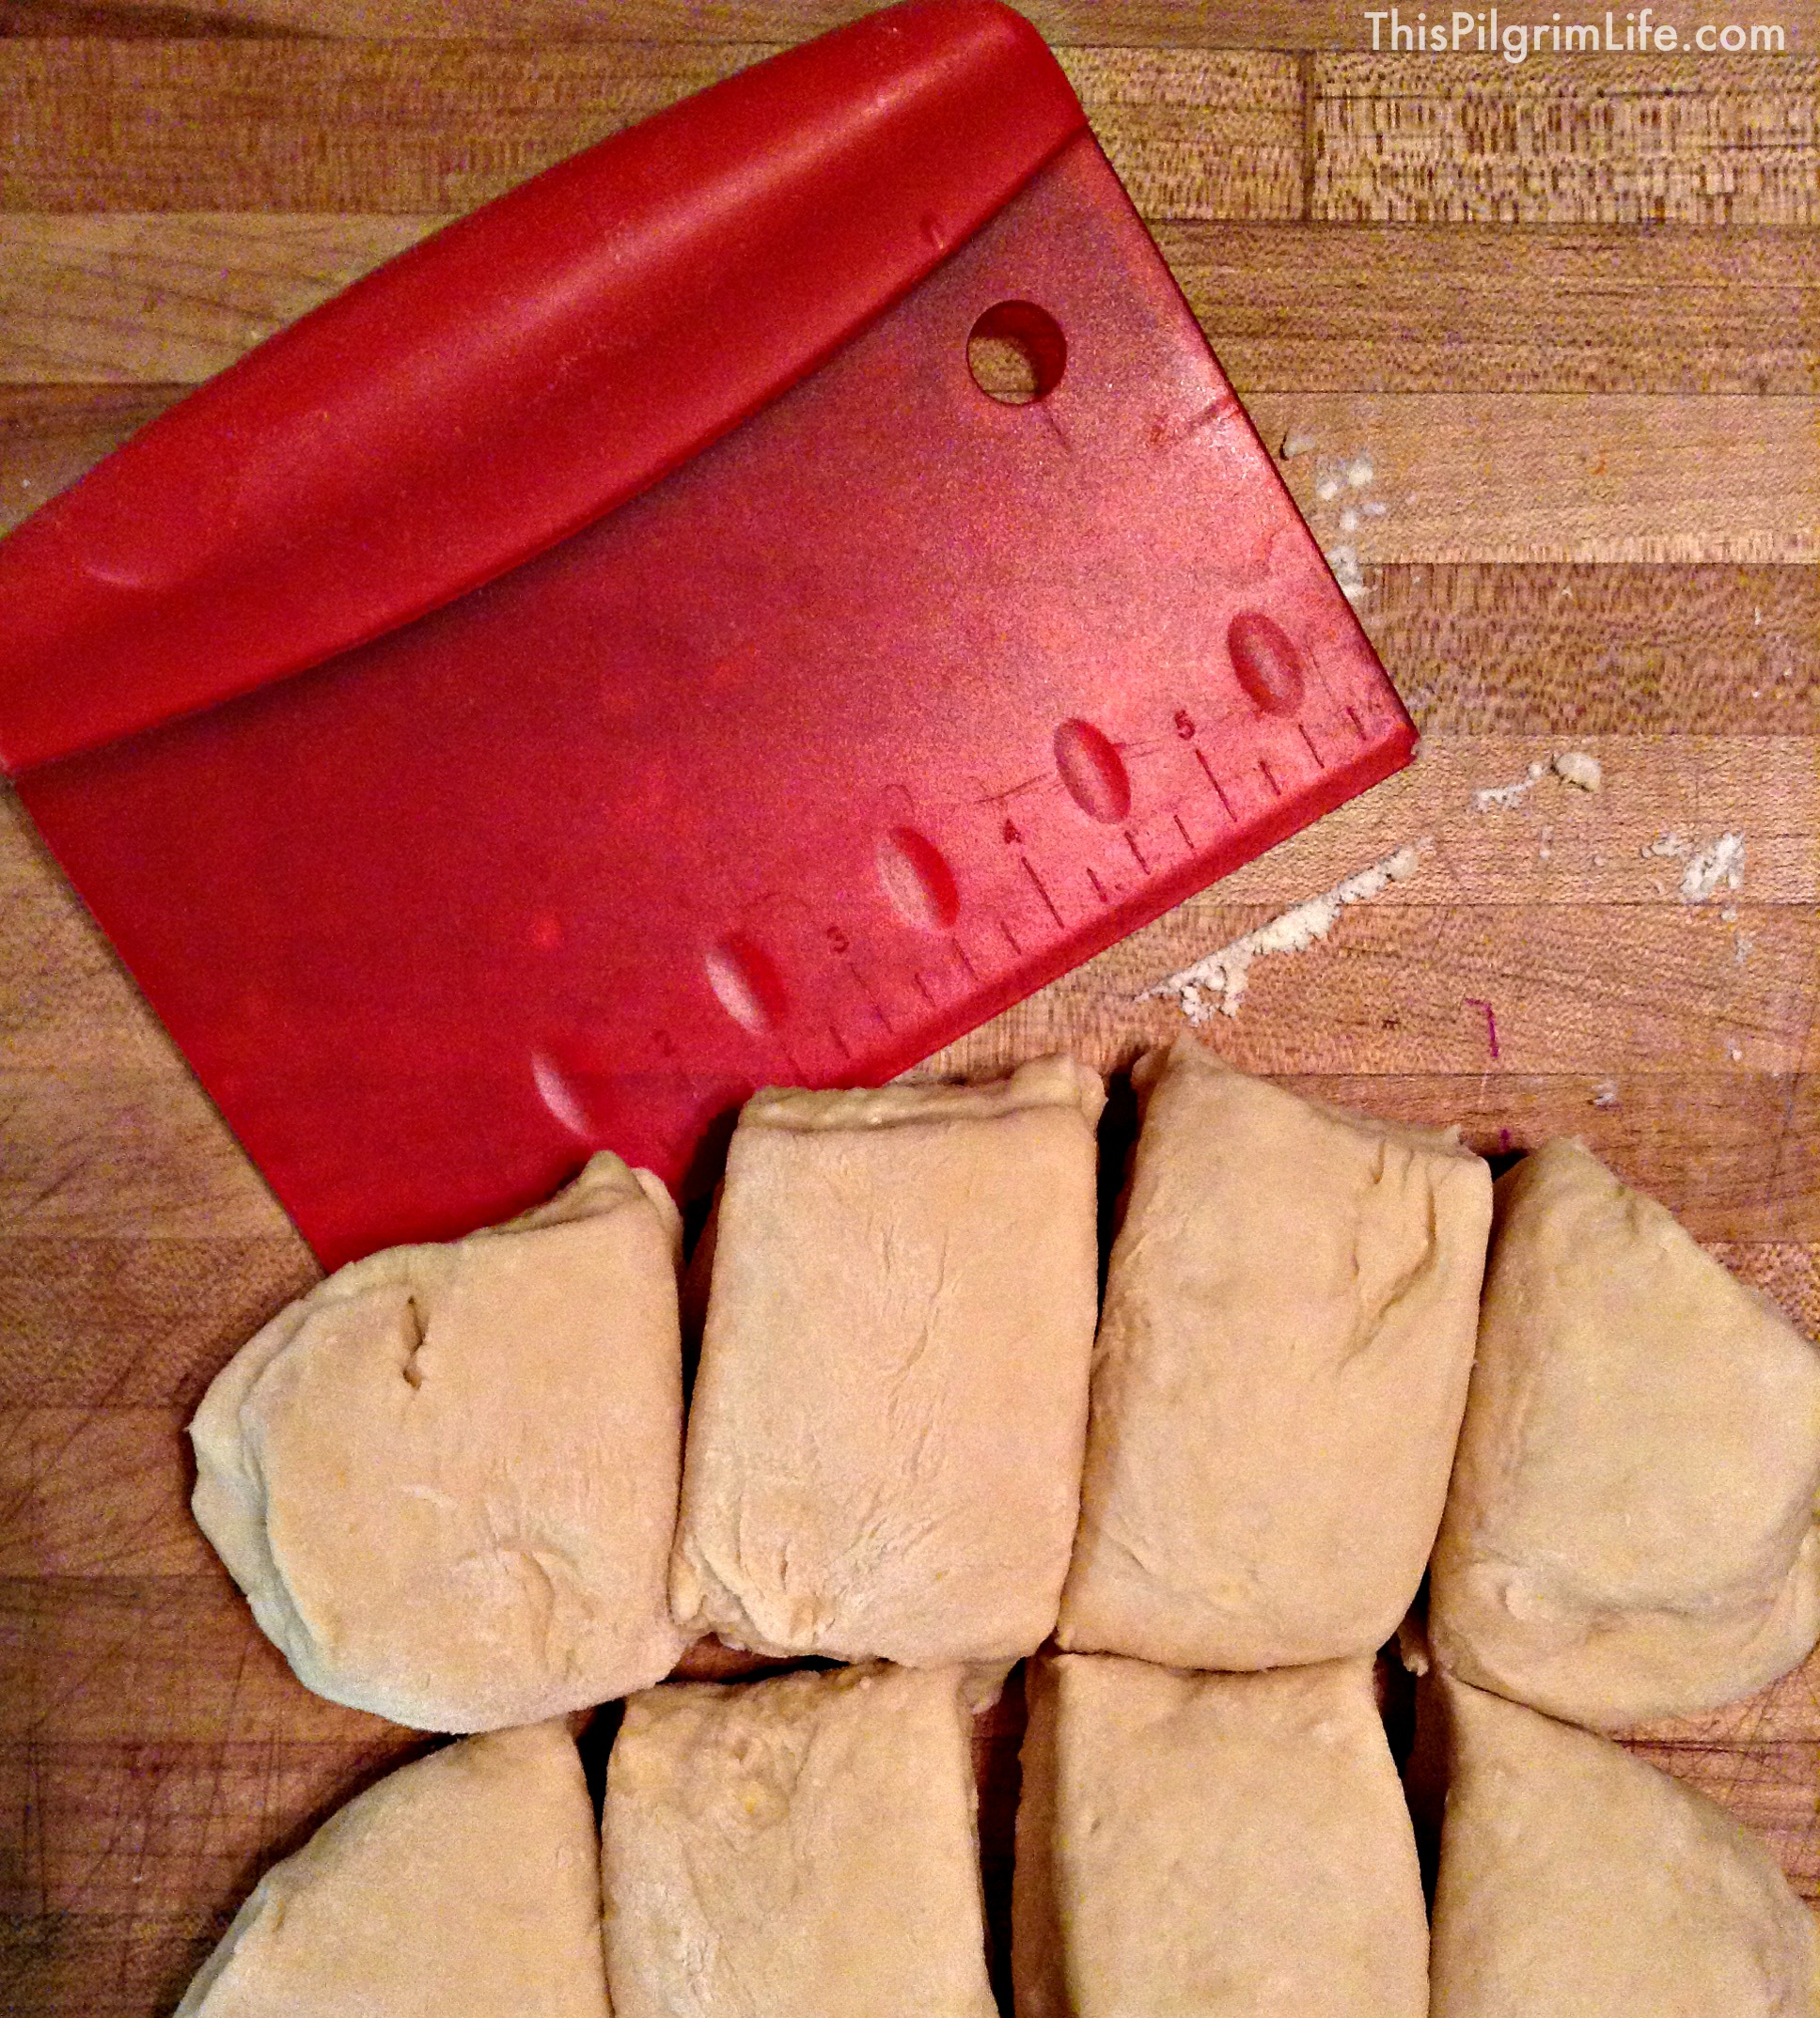 Bread Baking- Tips, tricks, and links to get you started